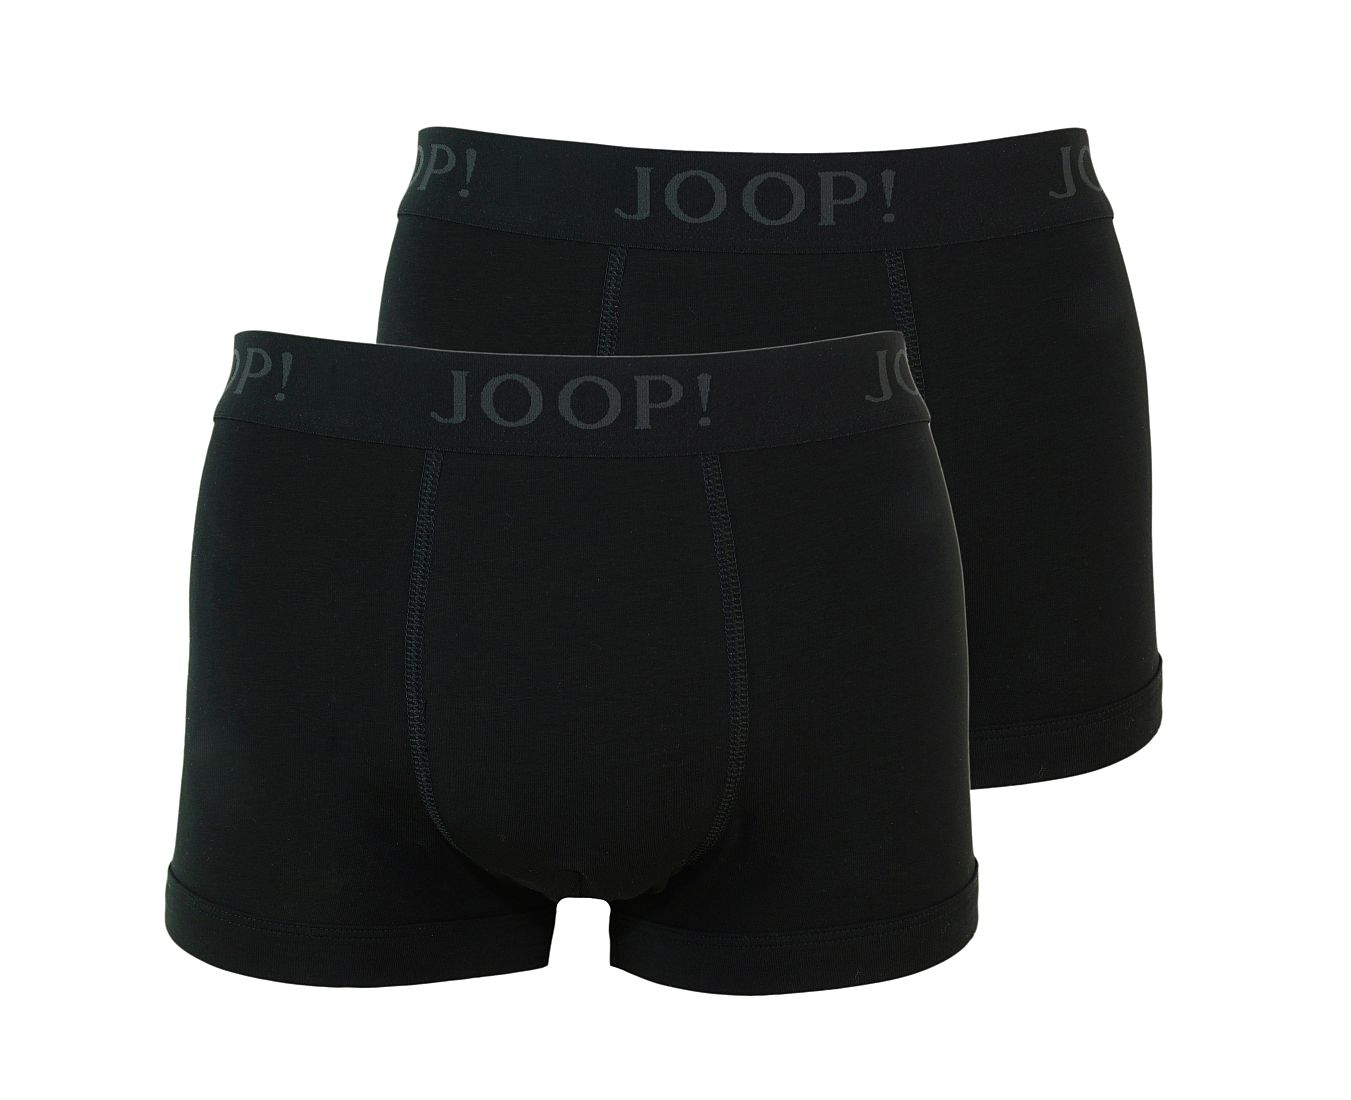 JOOP! Trunks Shorts 2er Pack 10001475 001 schwarz S17-JPST1gp